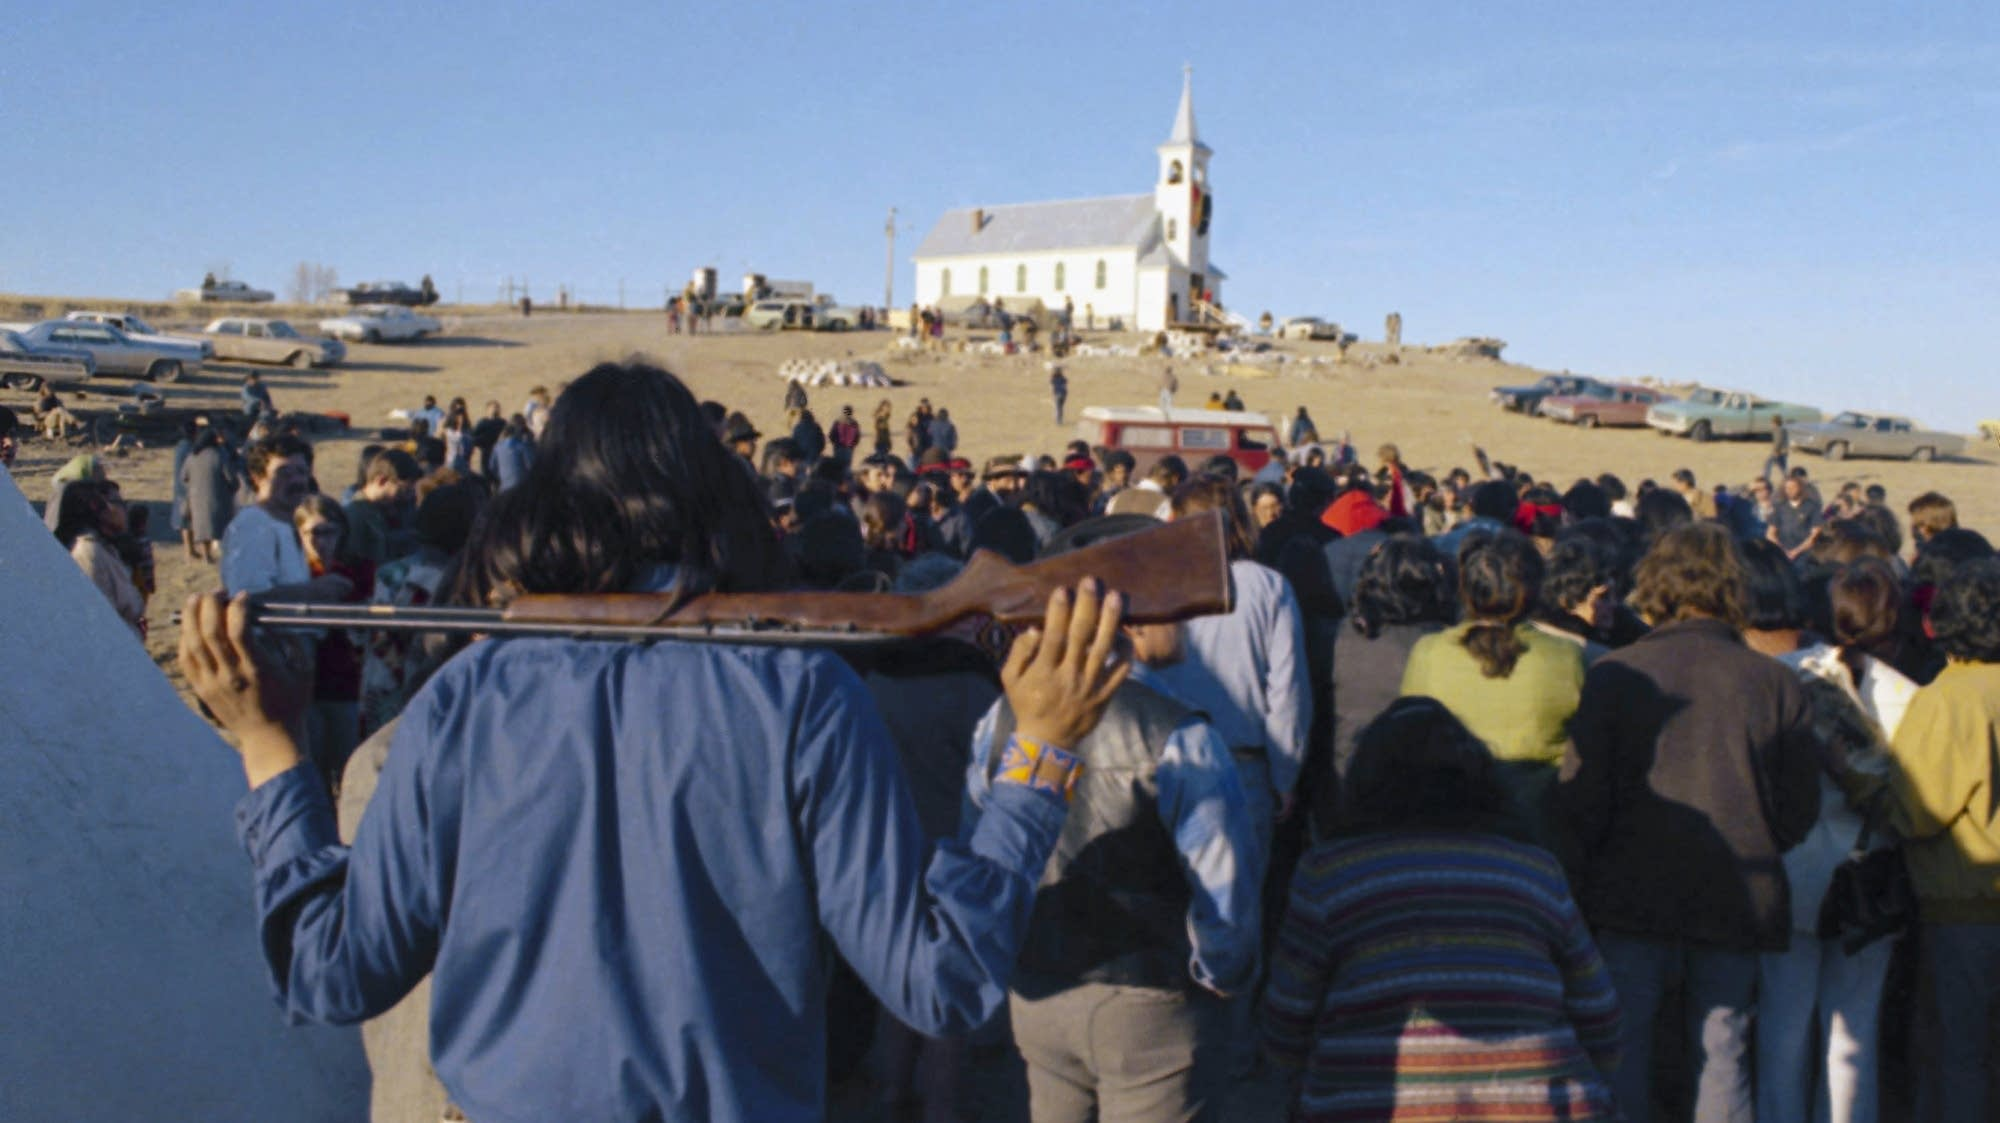 From the archives: The sounds of the 1973 Wounded Knee